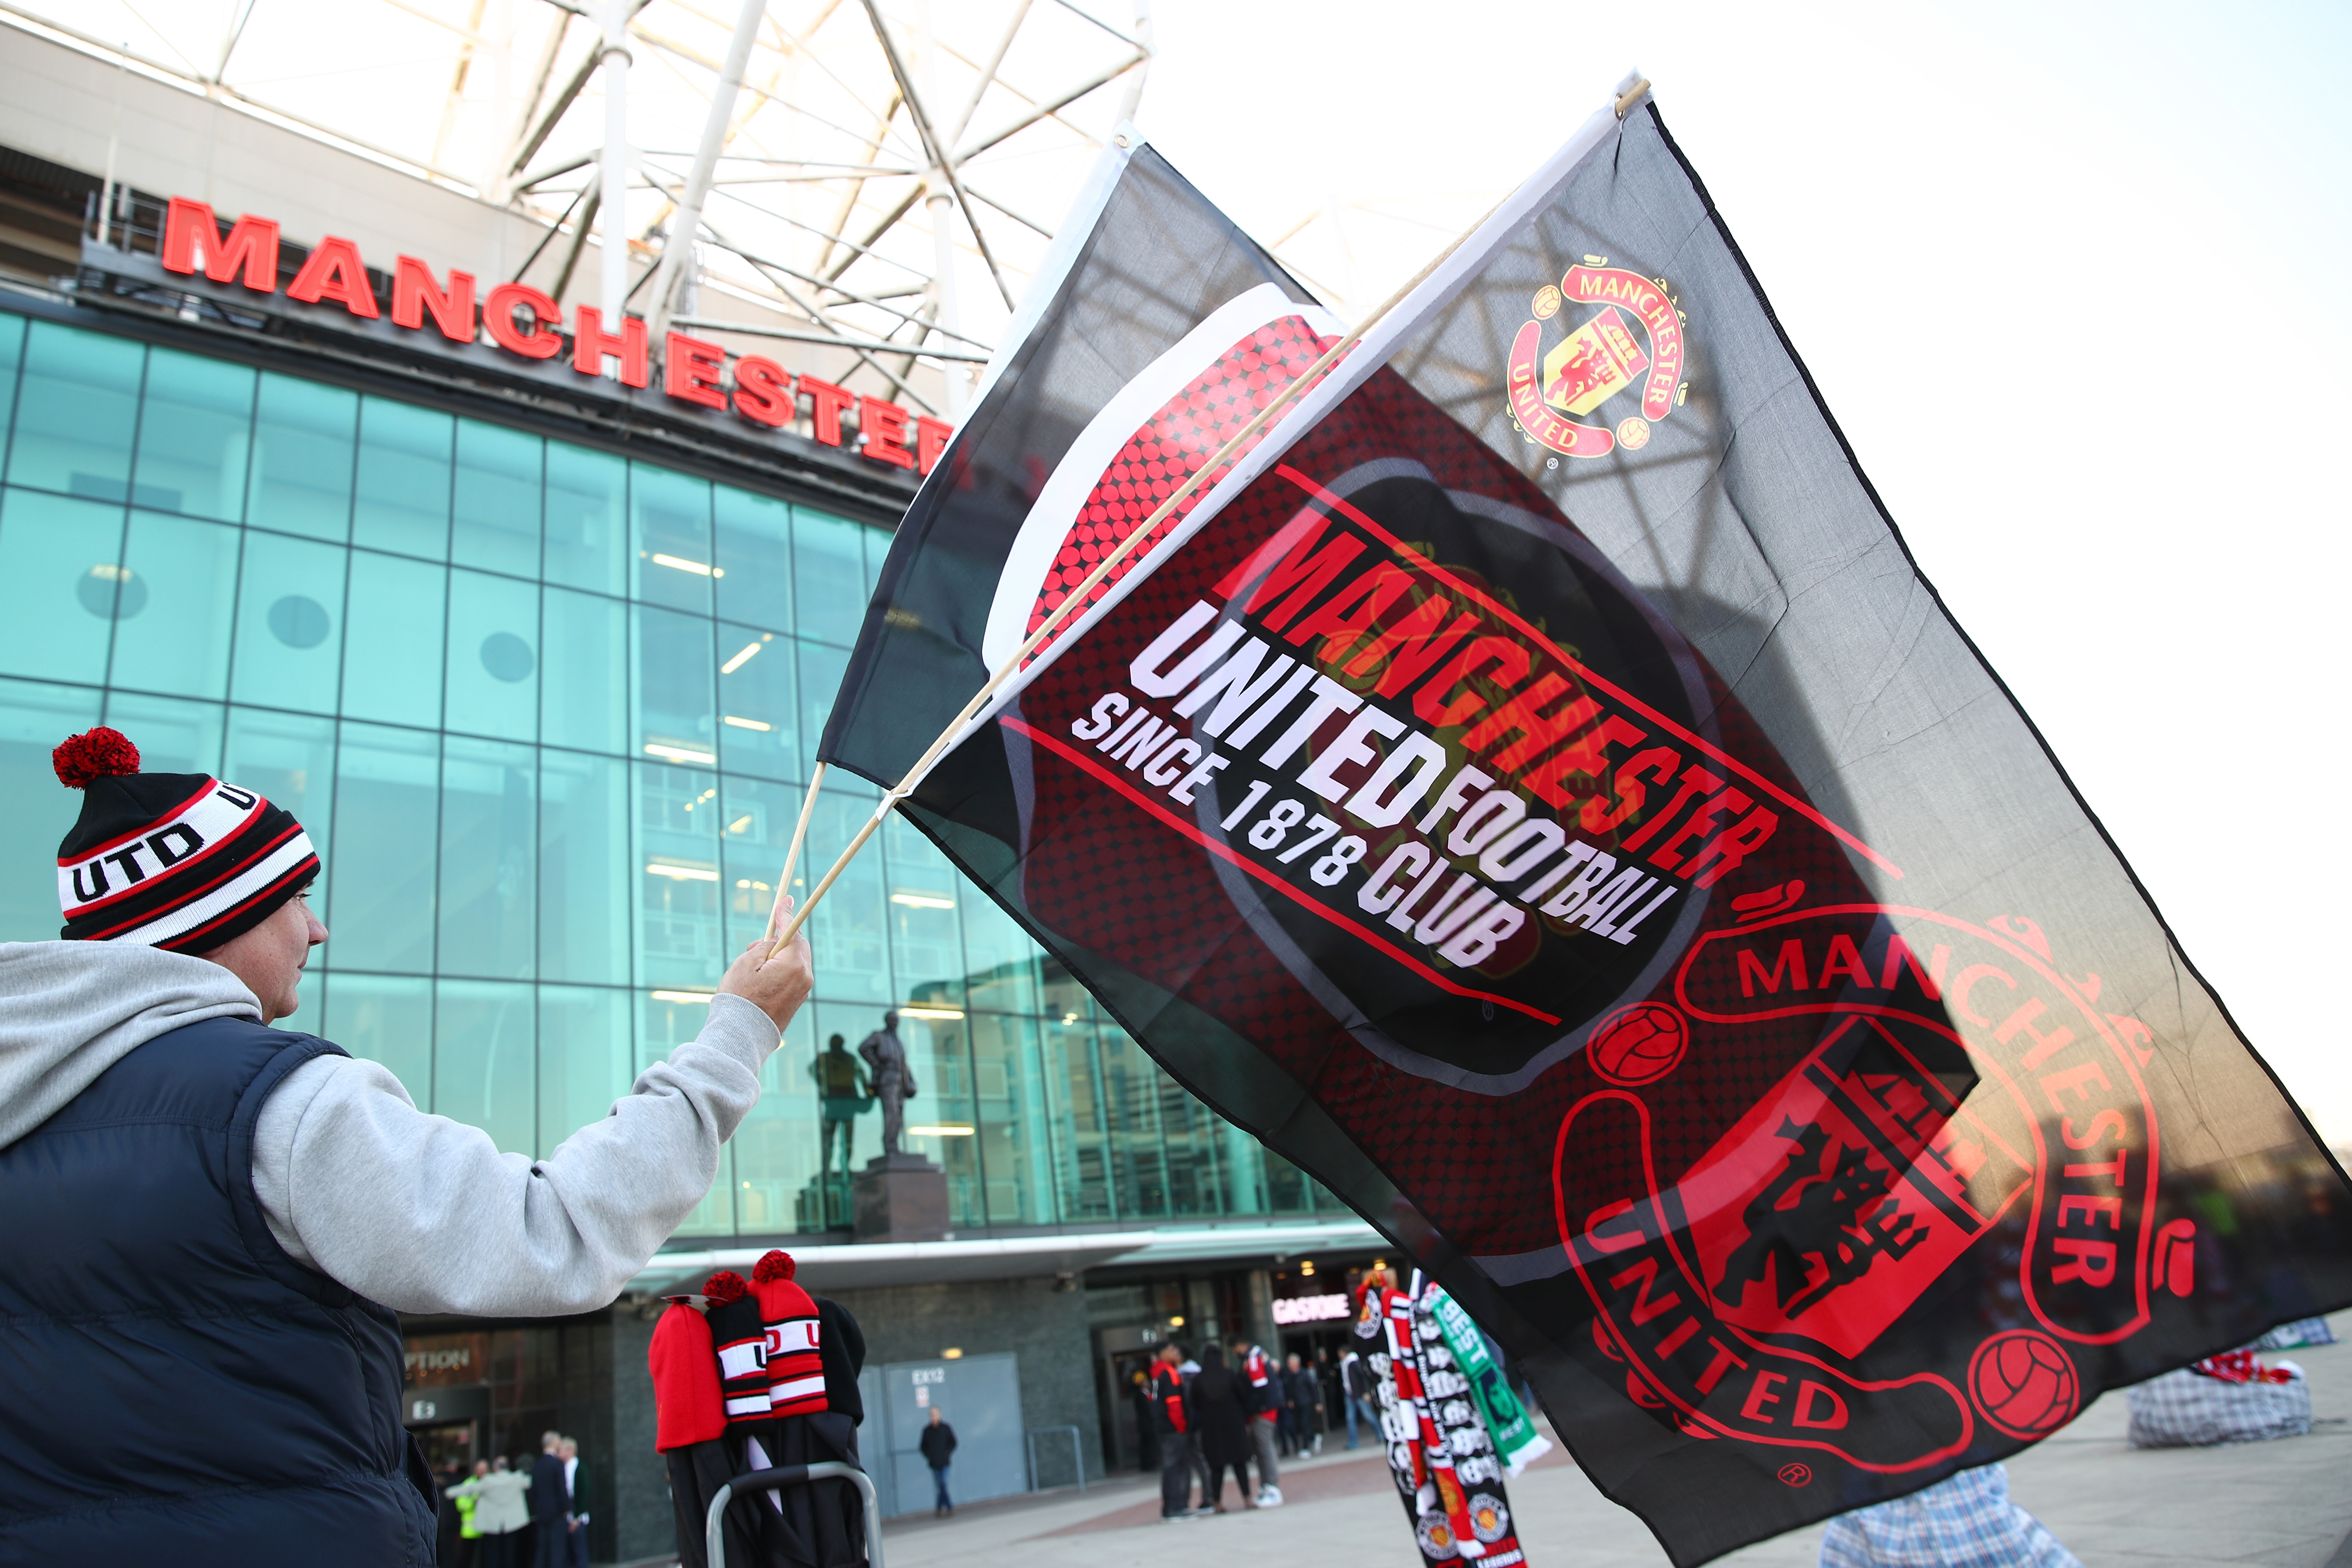 Manchester United attendance stats put them ahead of Real Madrid and Bayern Munich